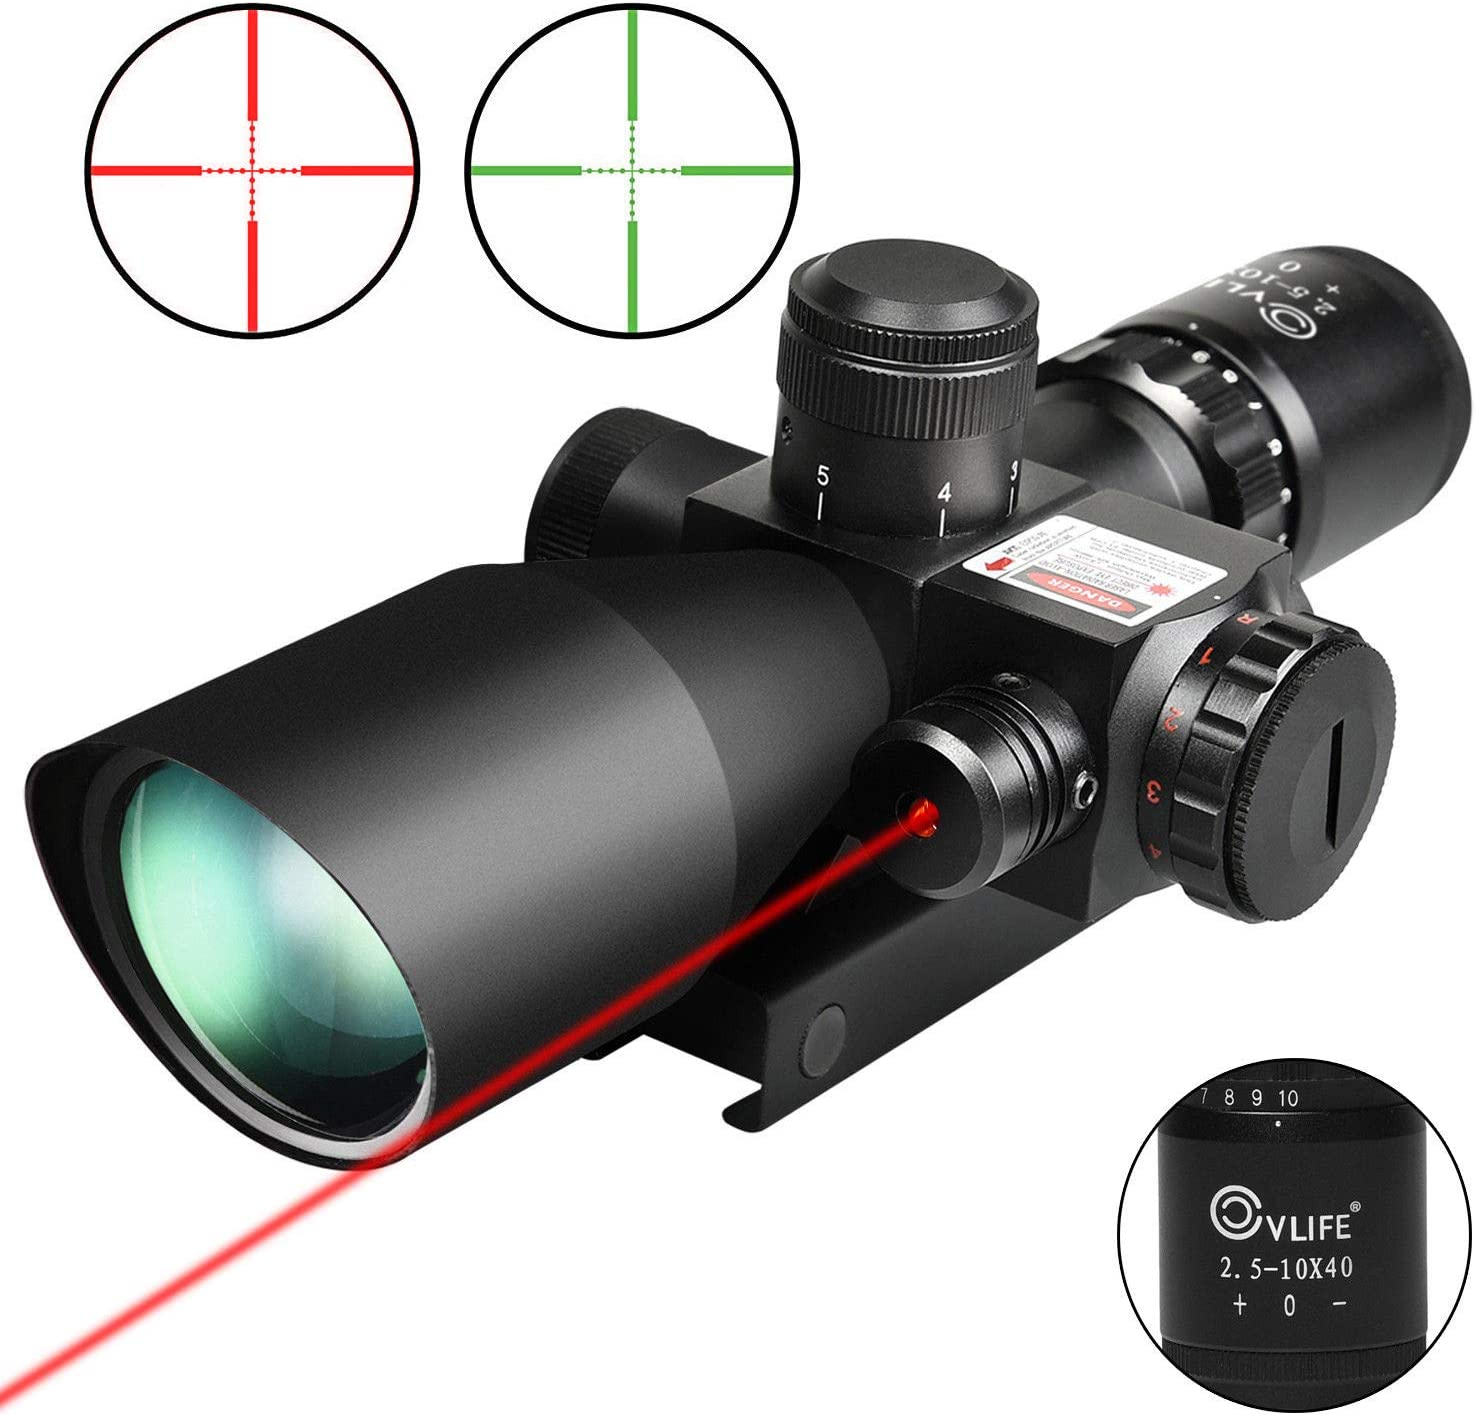 1. CVLIFE 2.5-10x40e Red & Green Illuminated Scope with 20mm Mount